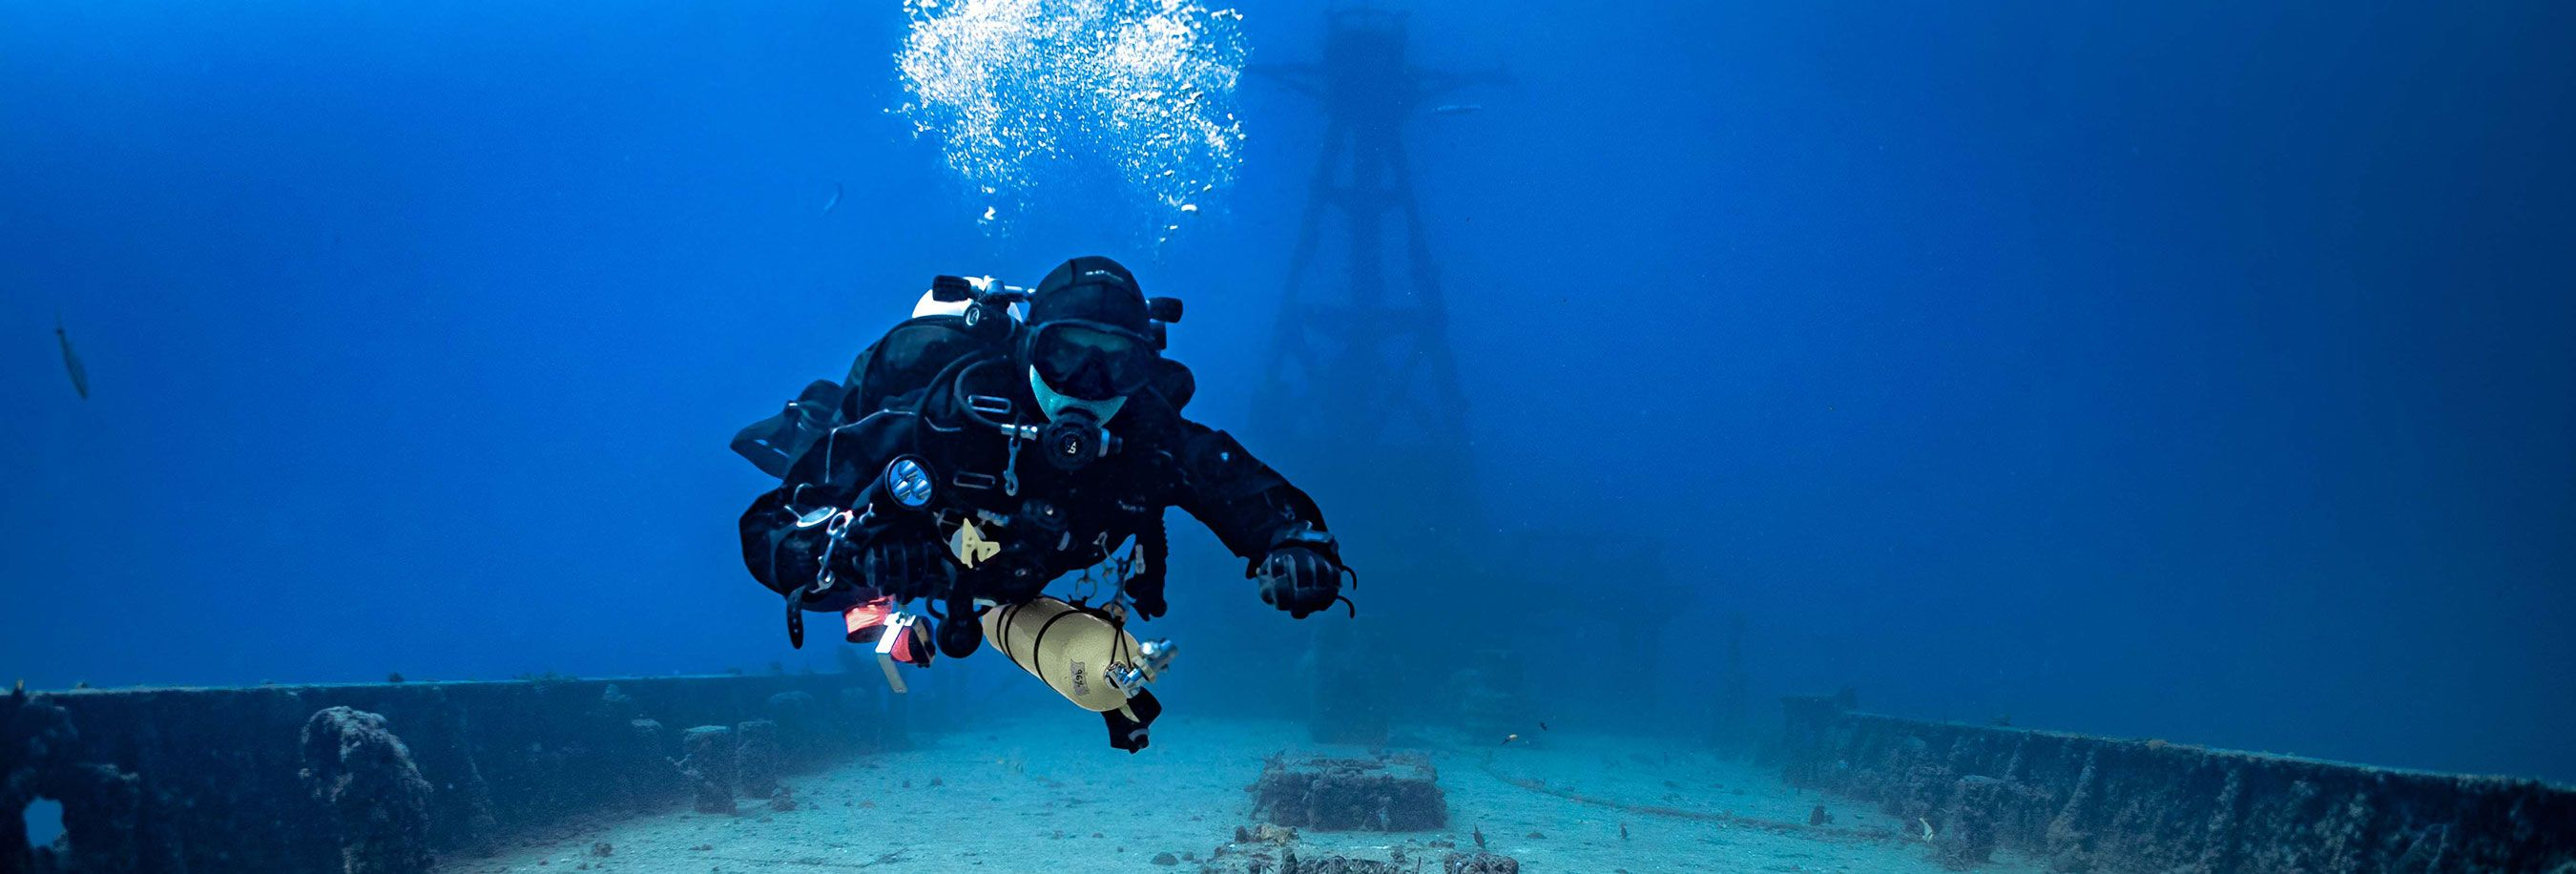 TDI-Diver-with-Doubles-and-Sidemount-Above-Wreck-Photo.jpg